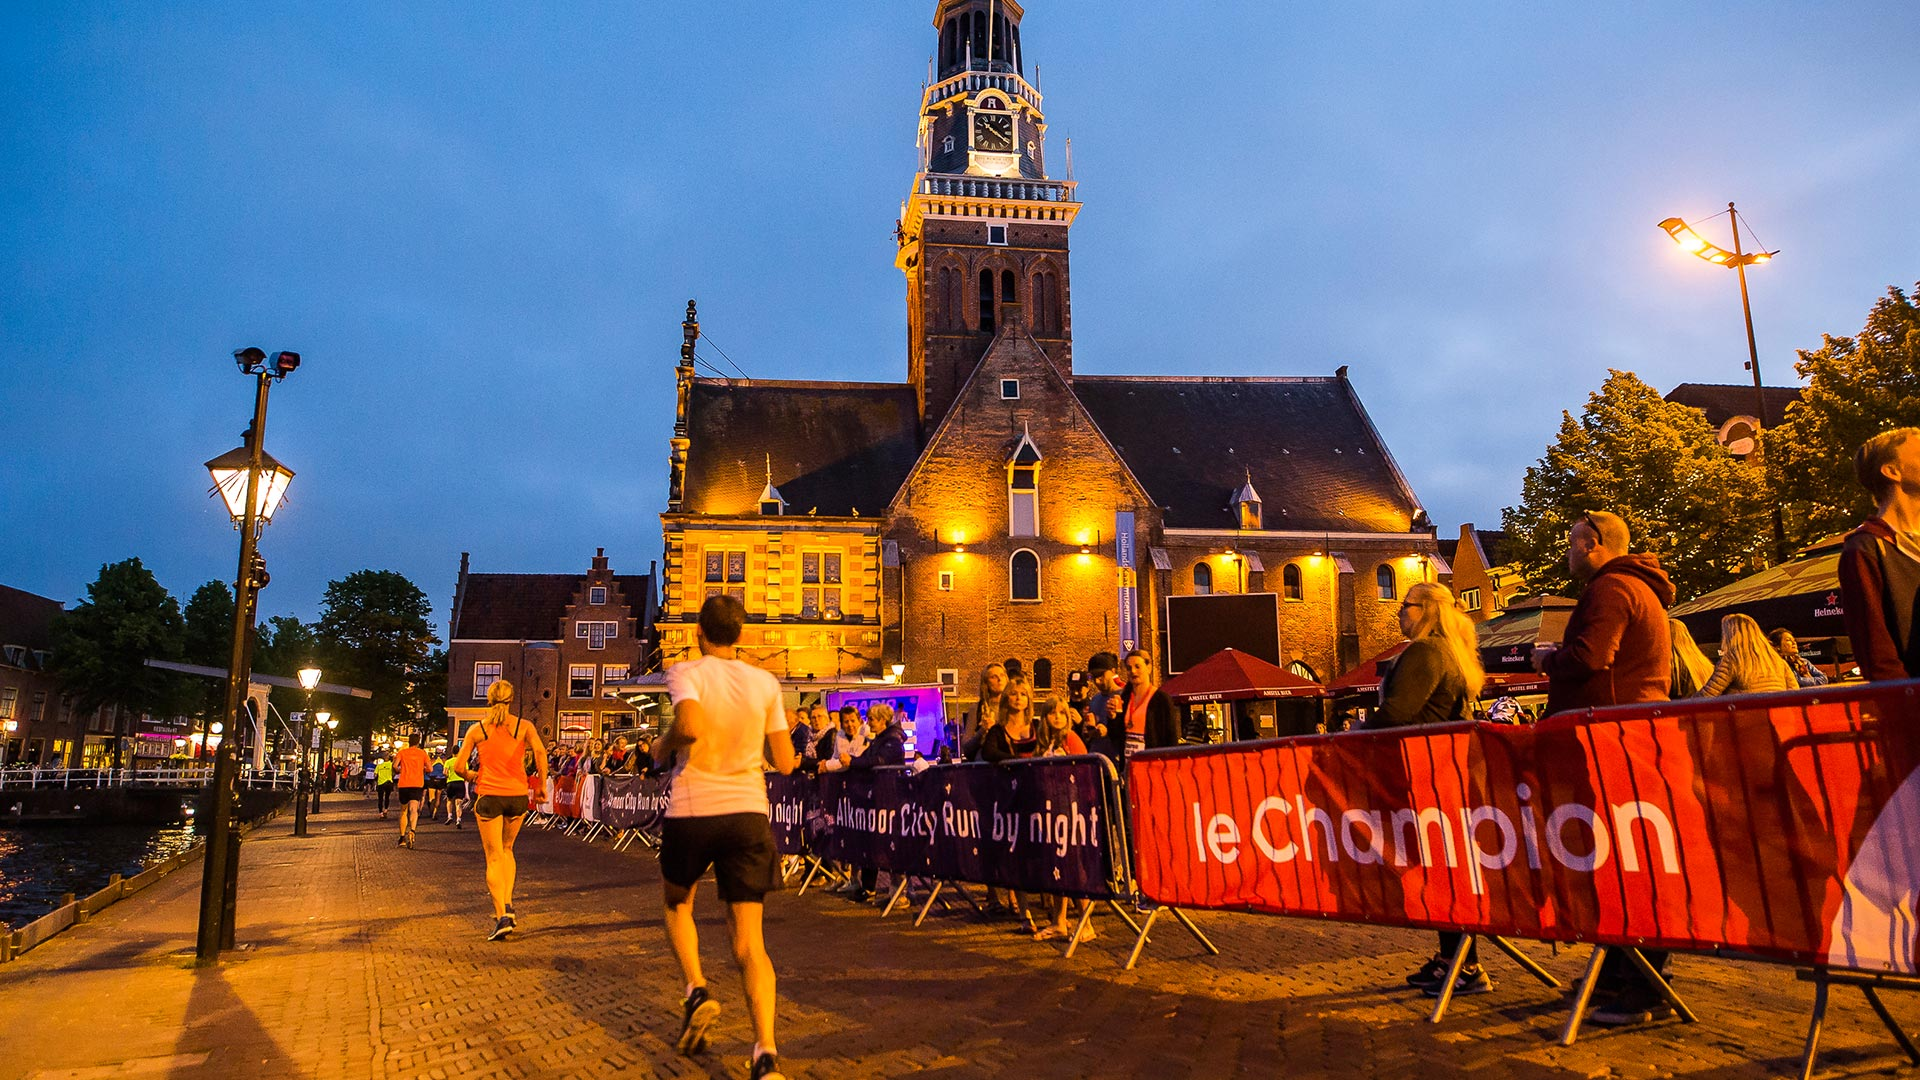 Alkmaar City Run by night 2017